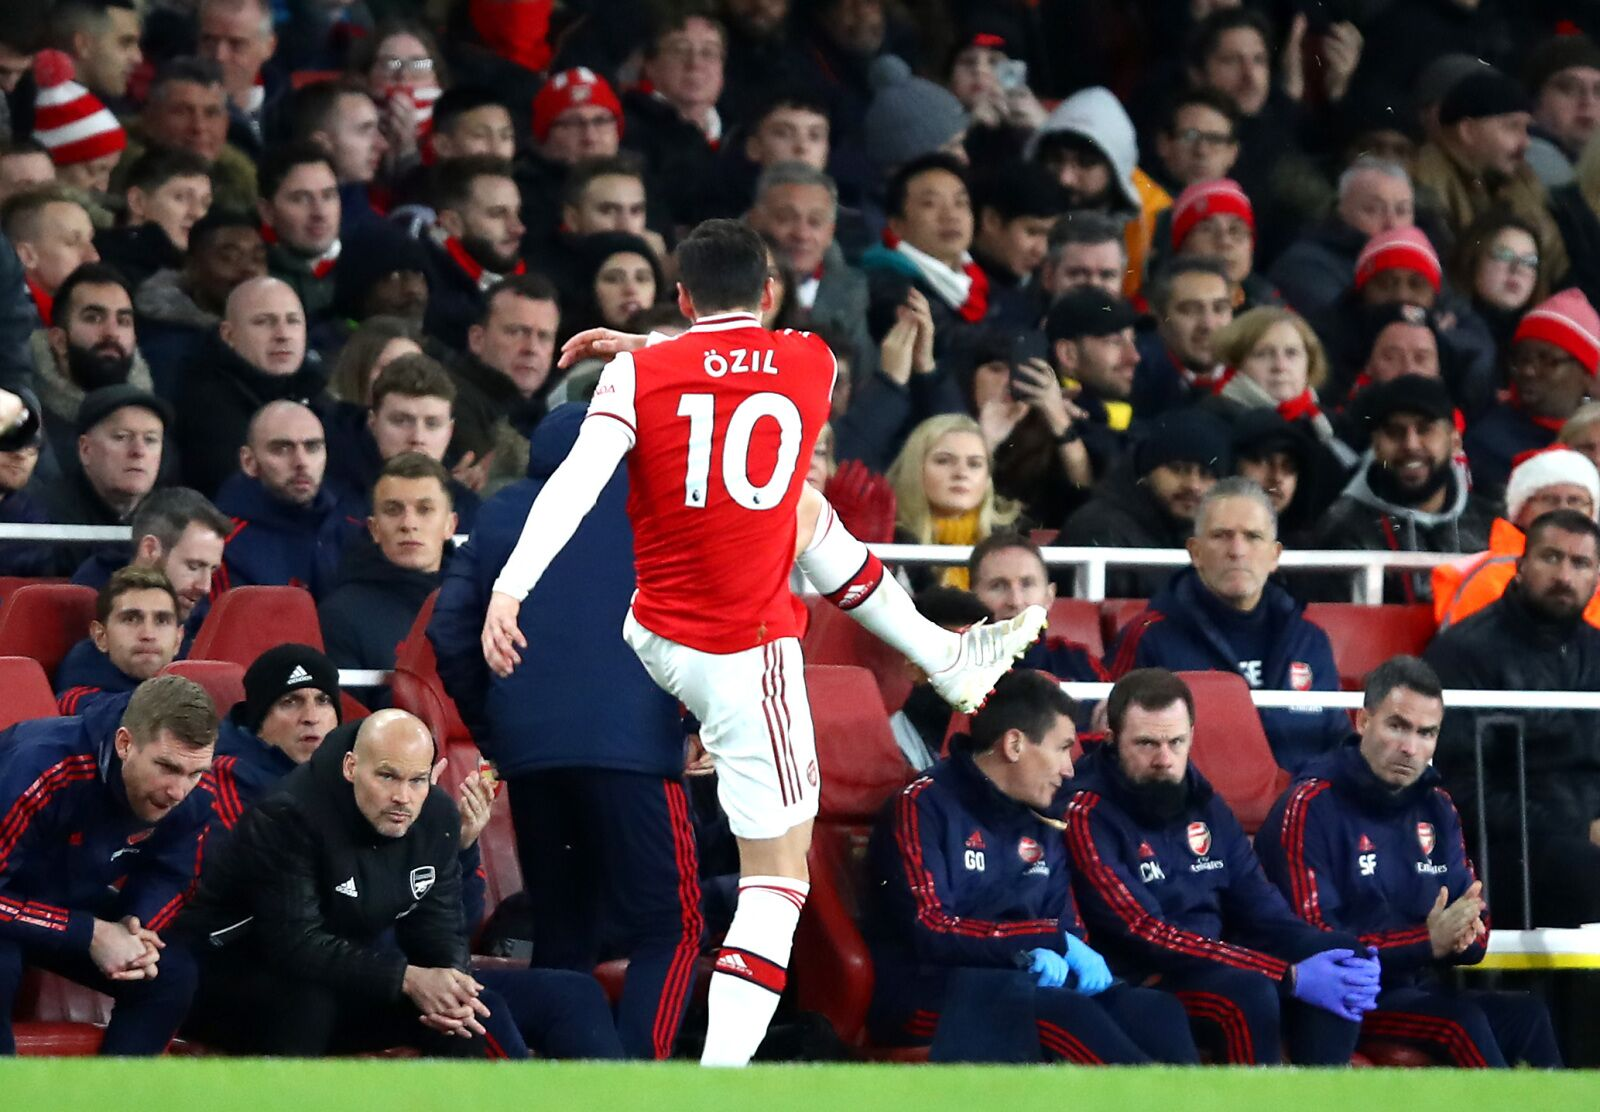 Arsenal and Mesut Ozil: Learning from contract calamity